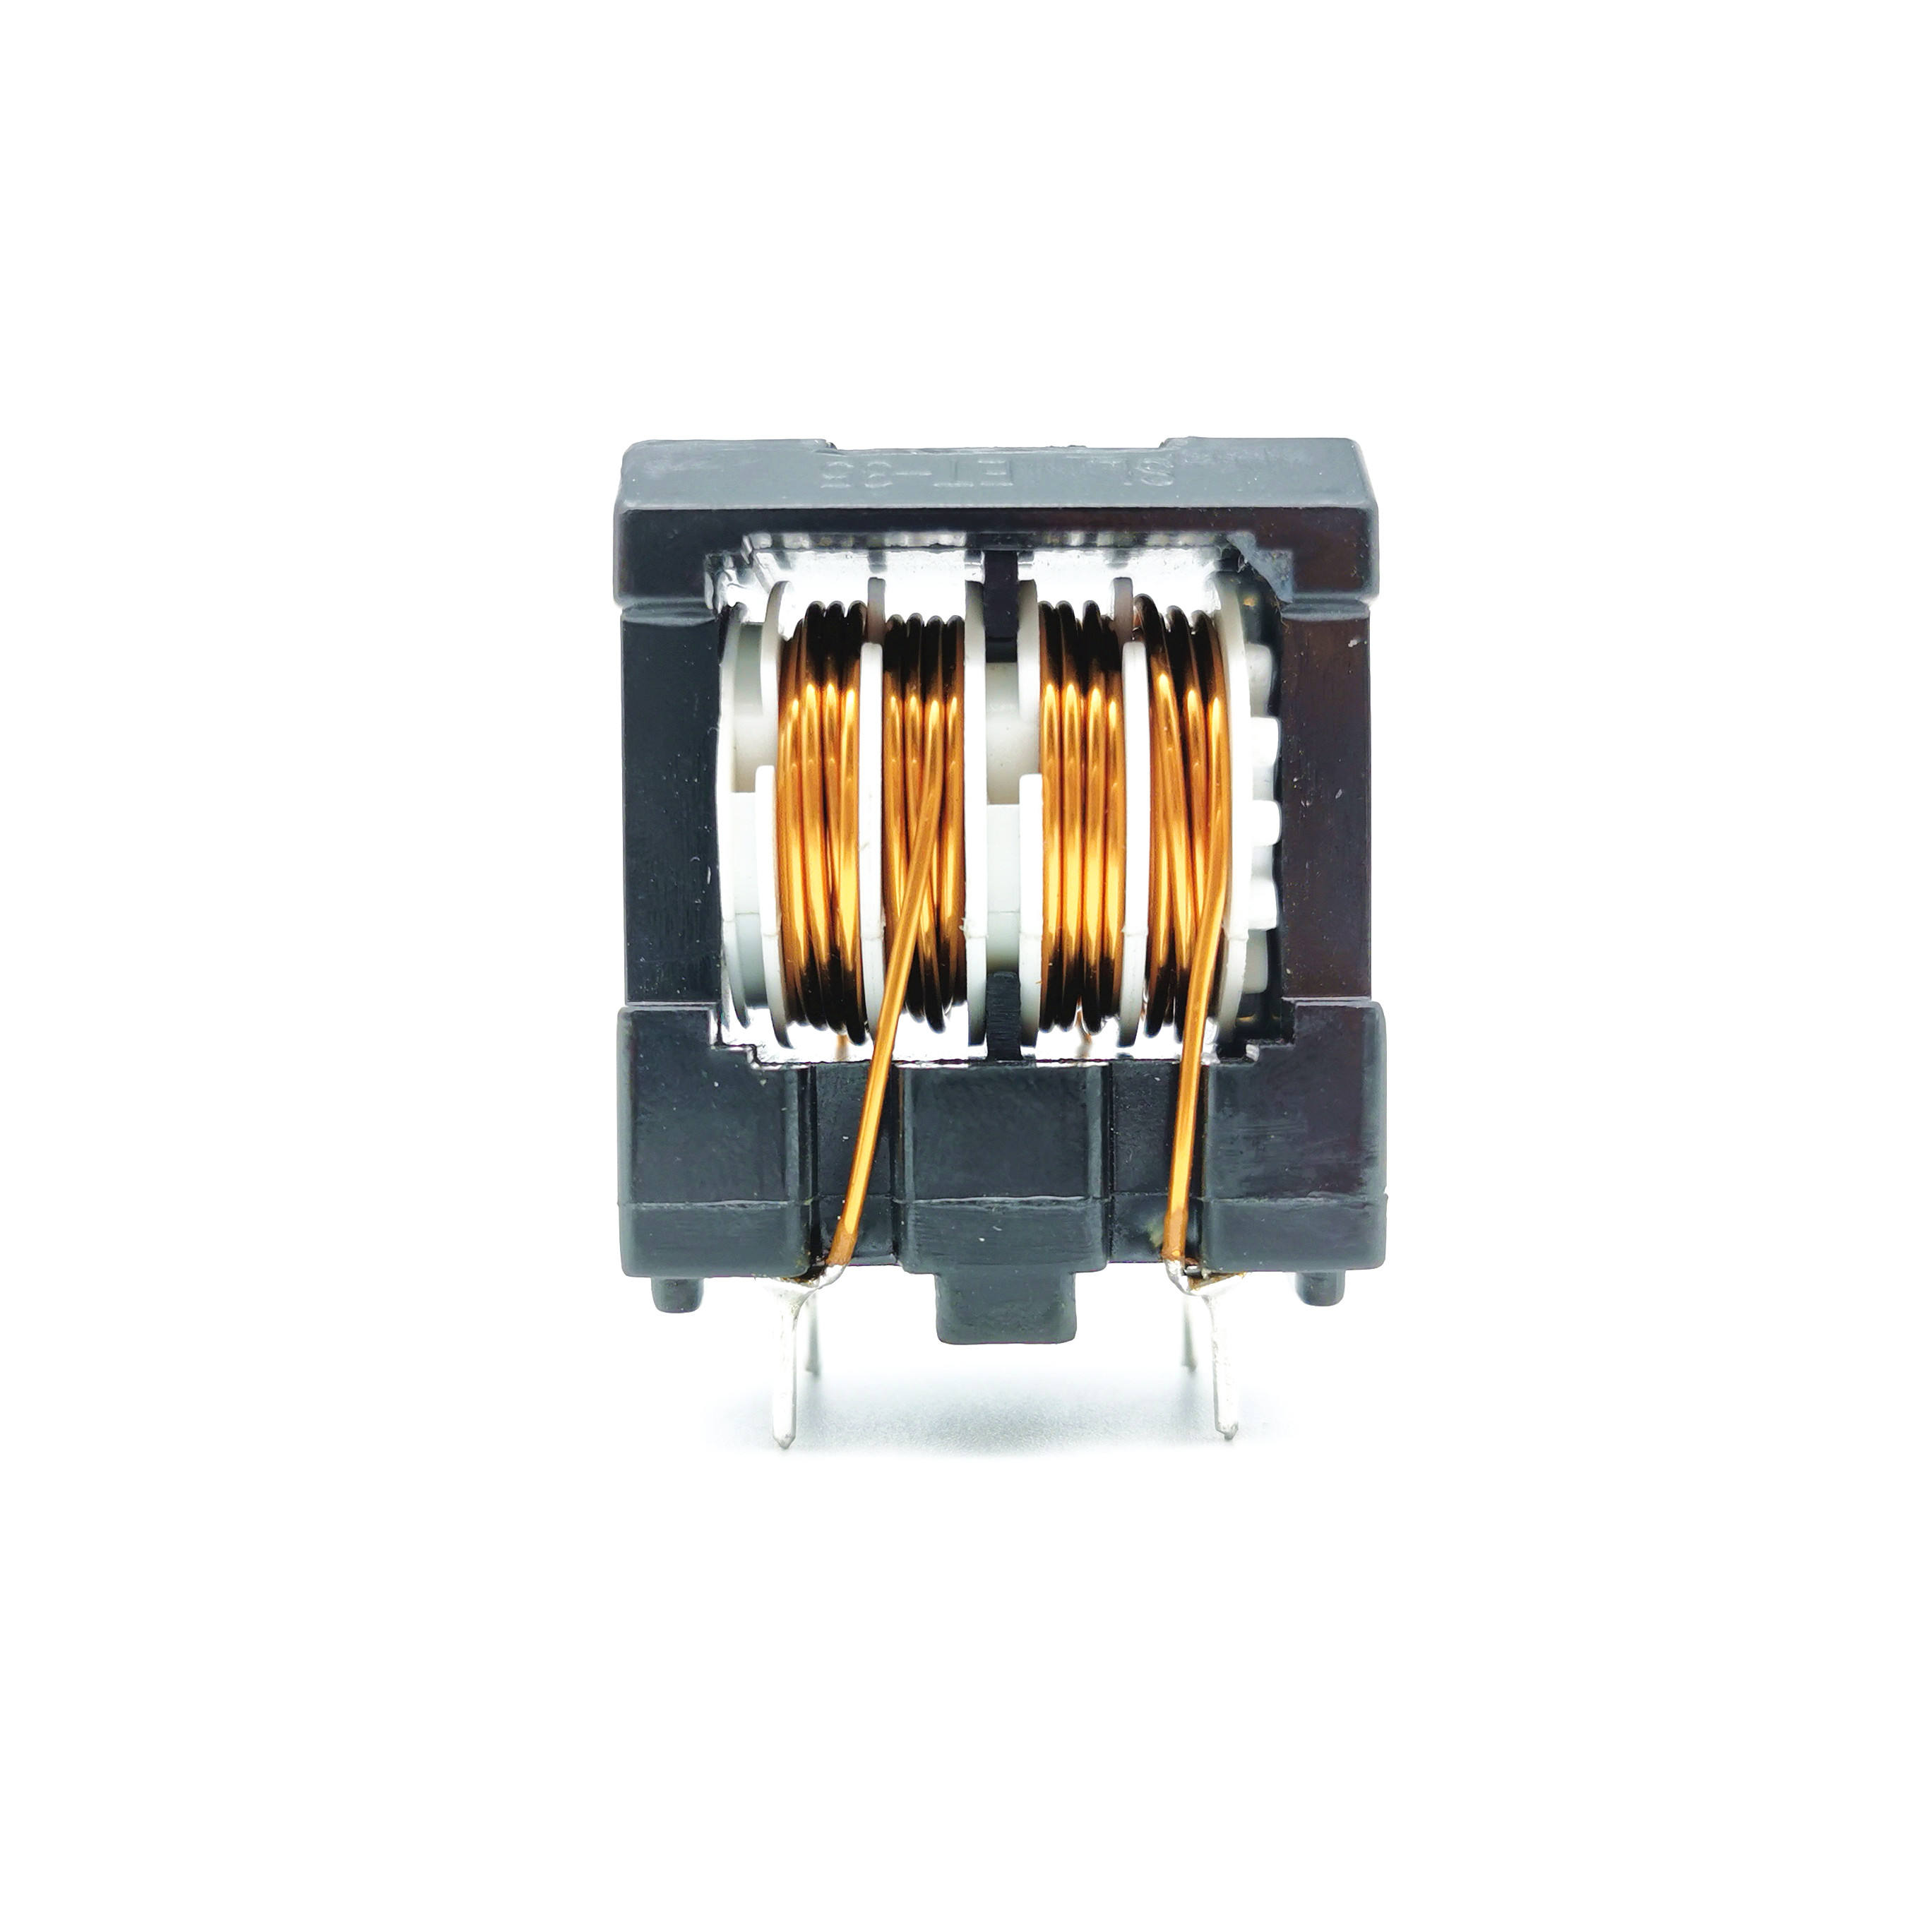 ET35 power line filter common mode choke inductor